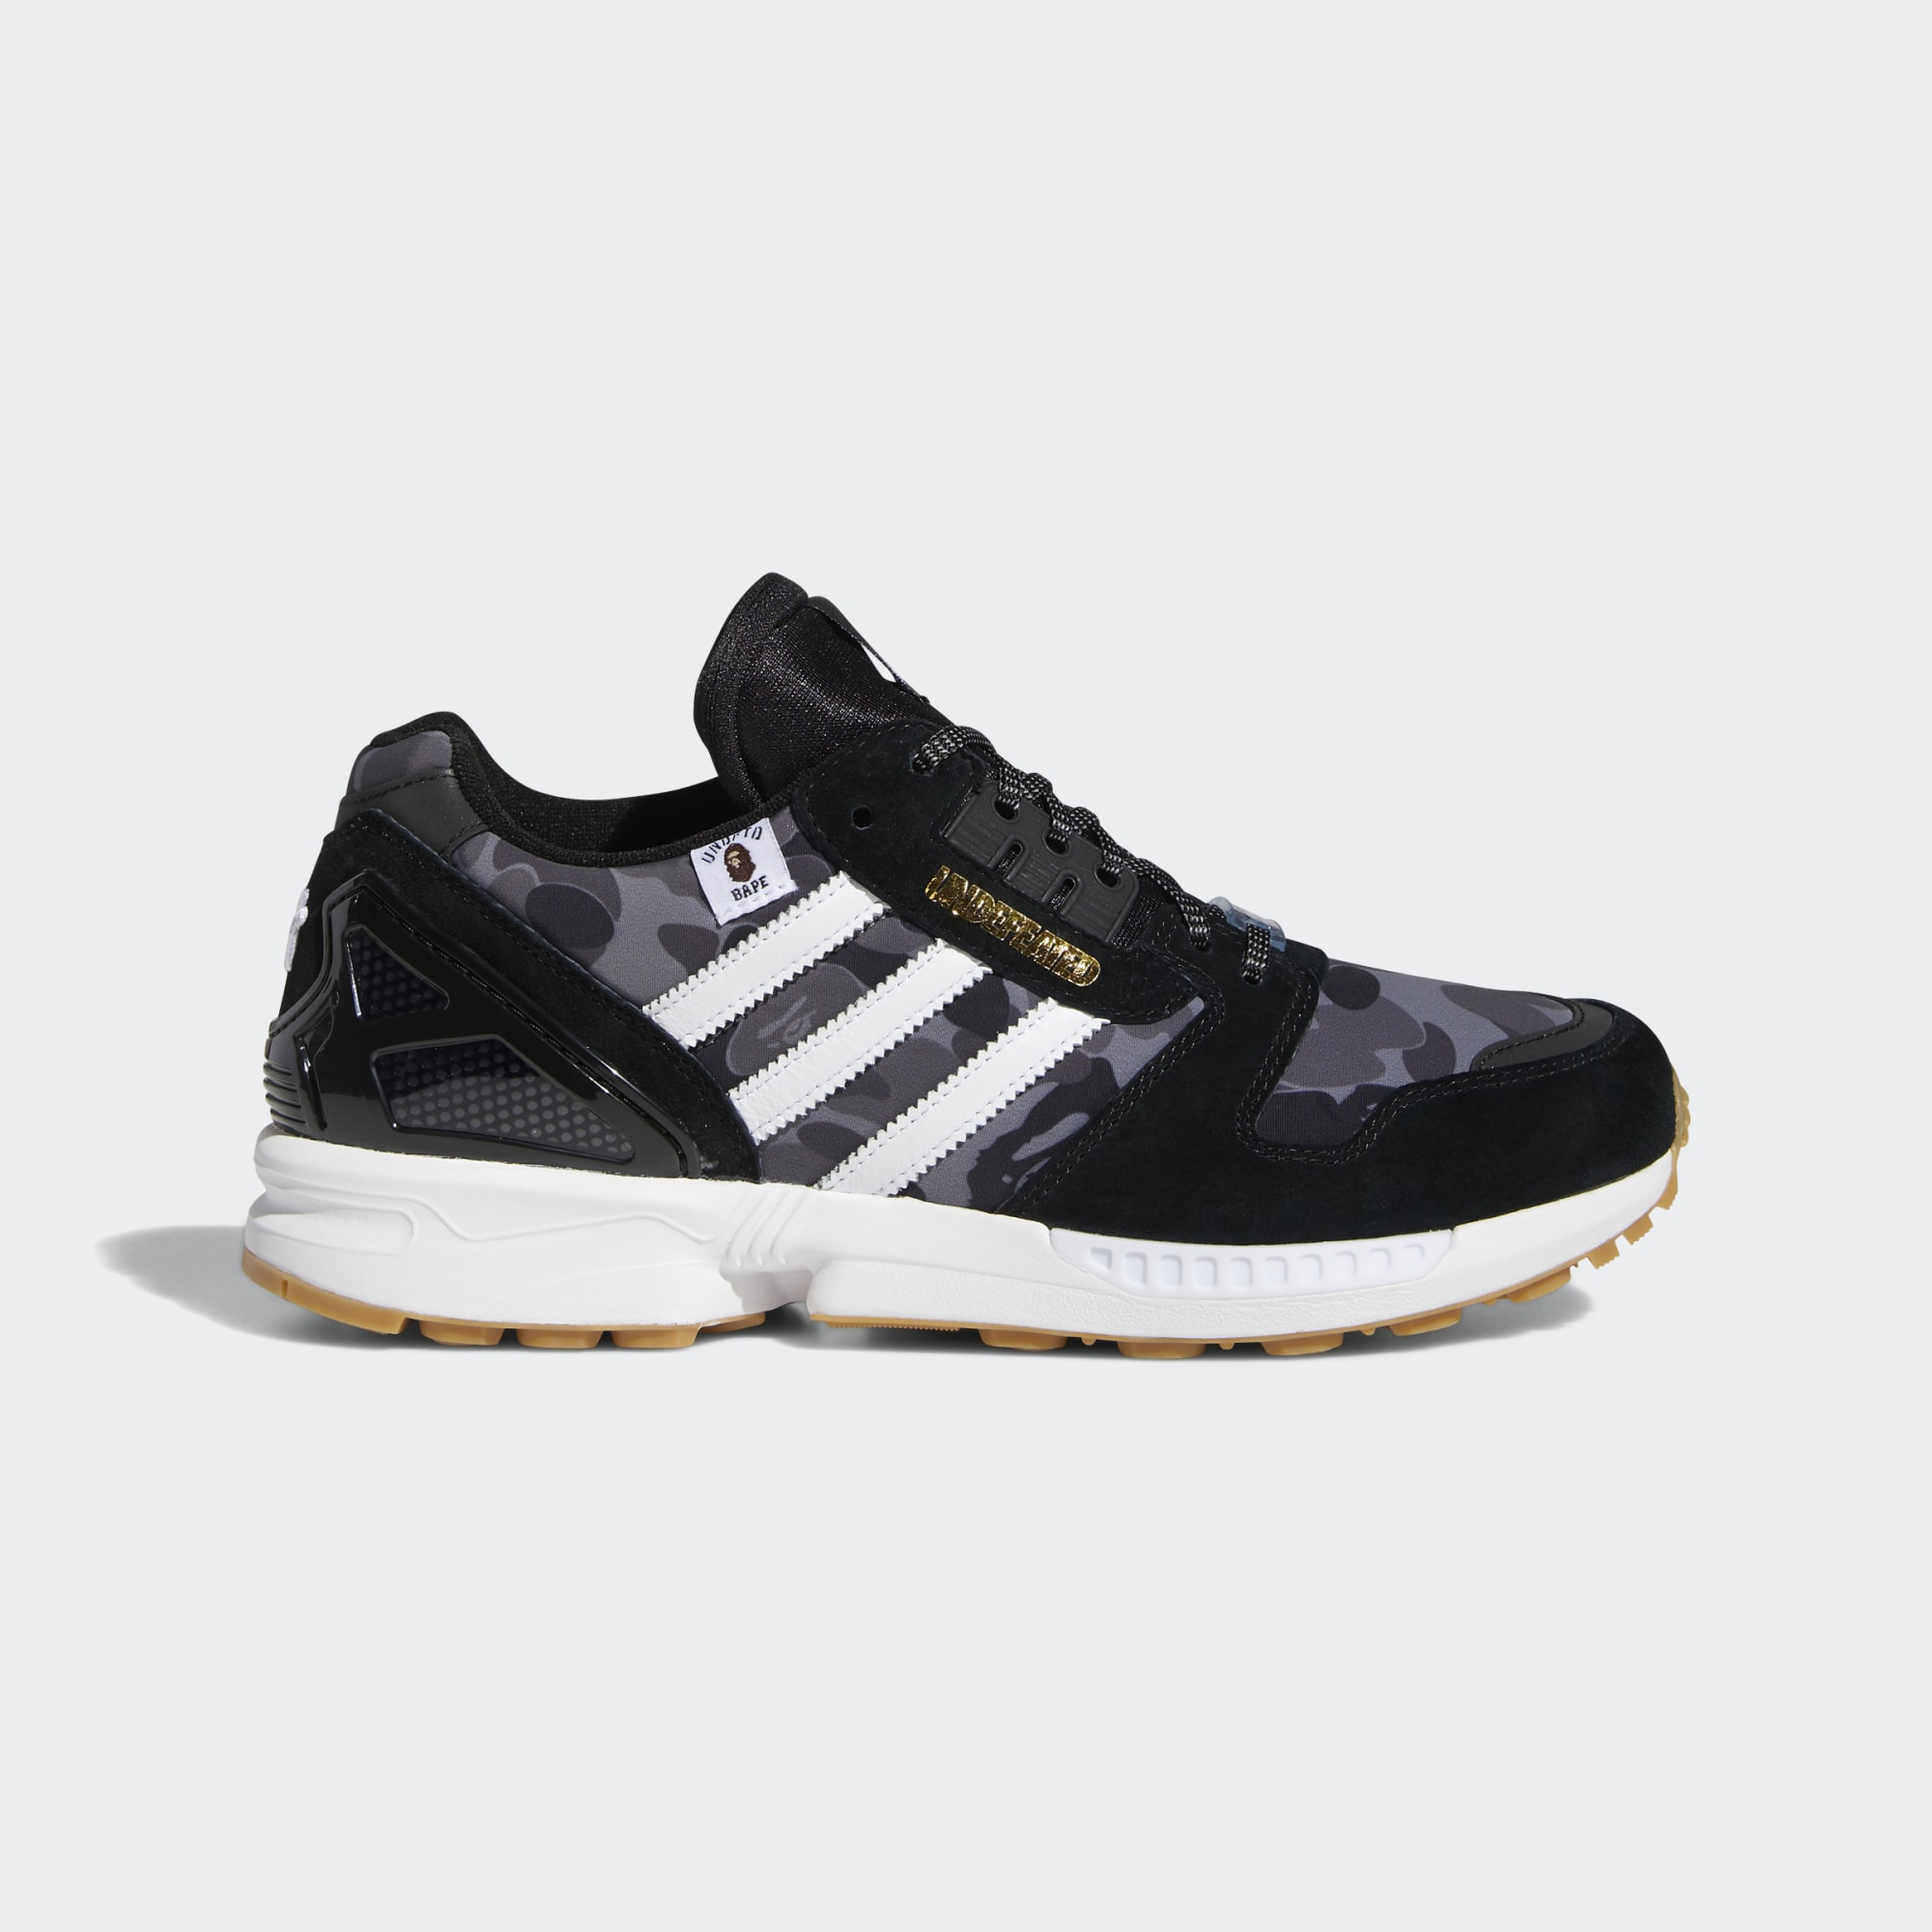 adidas Originals ZX 8000 x Bape x Undefeated 'Core Black'}